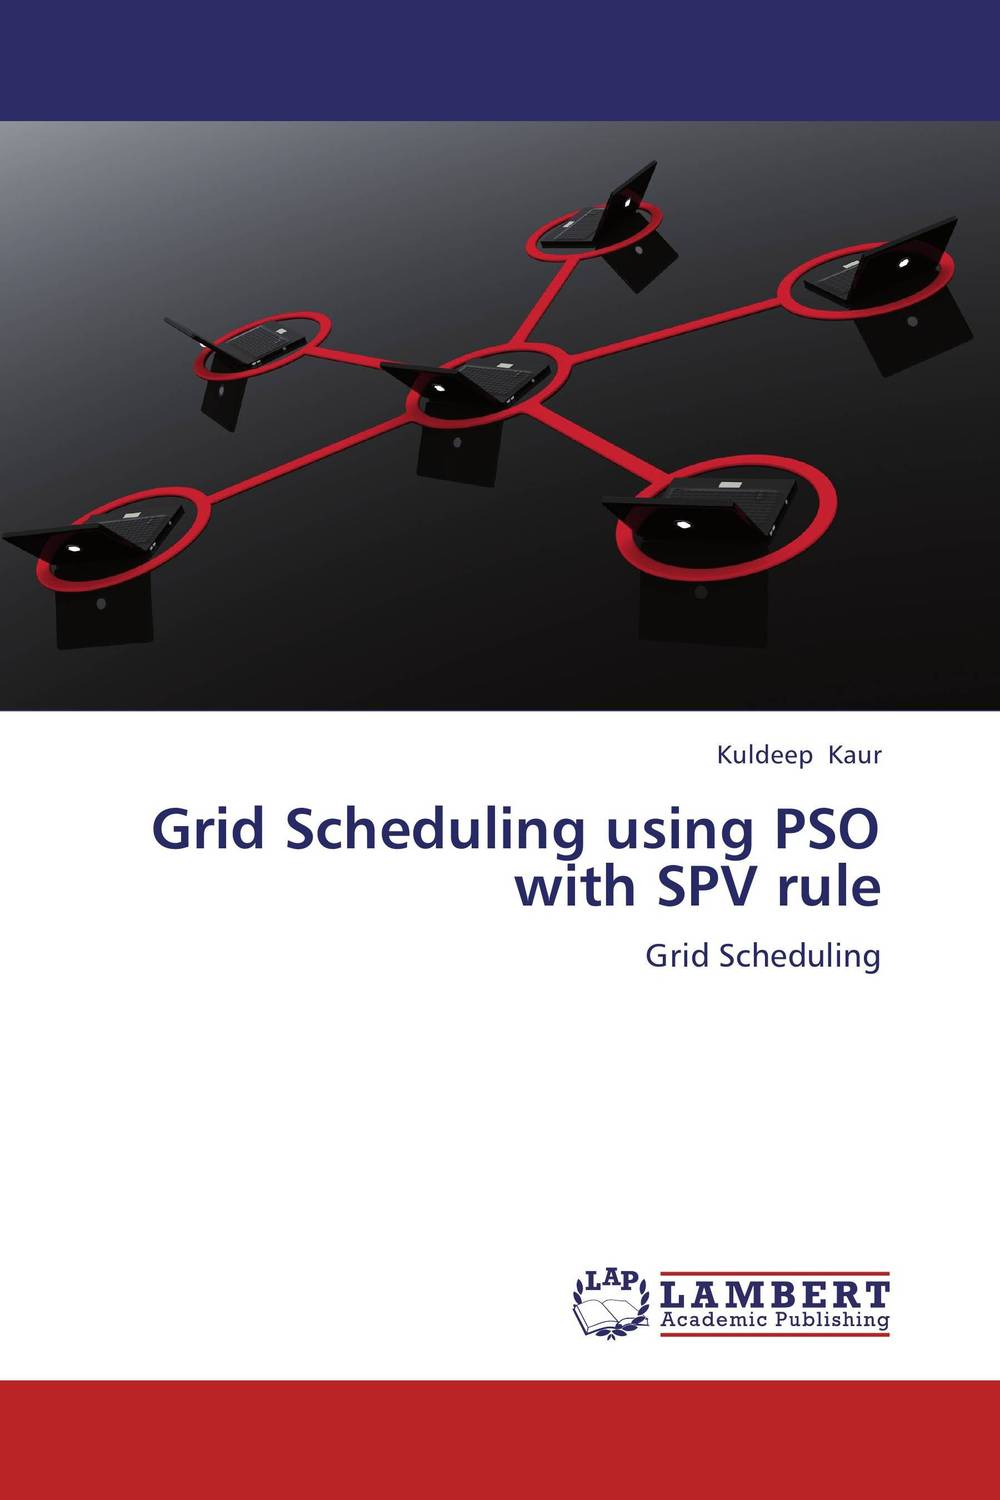 Grid Scheduling using PSO with SPV rule